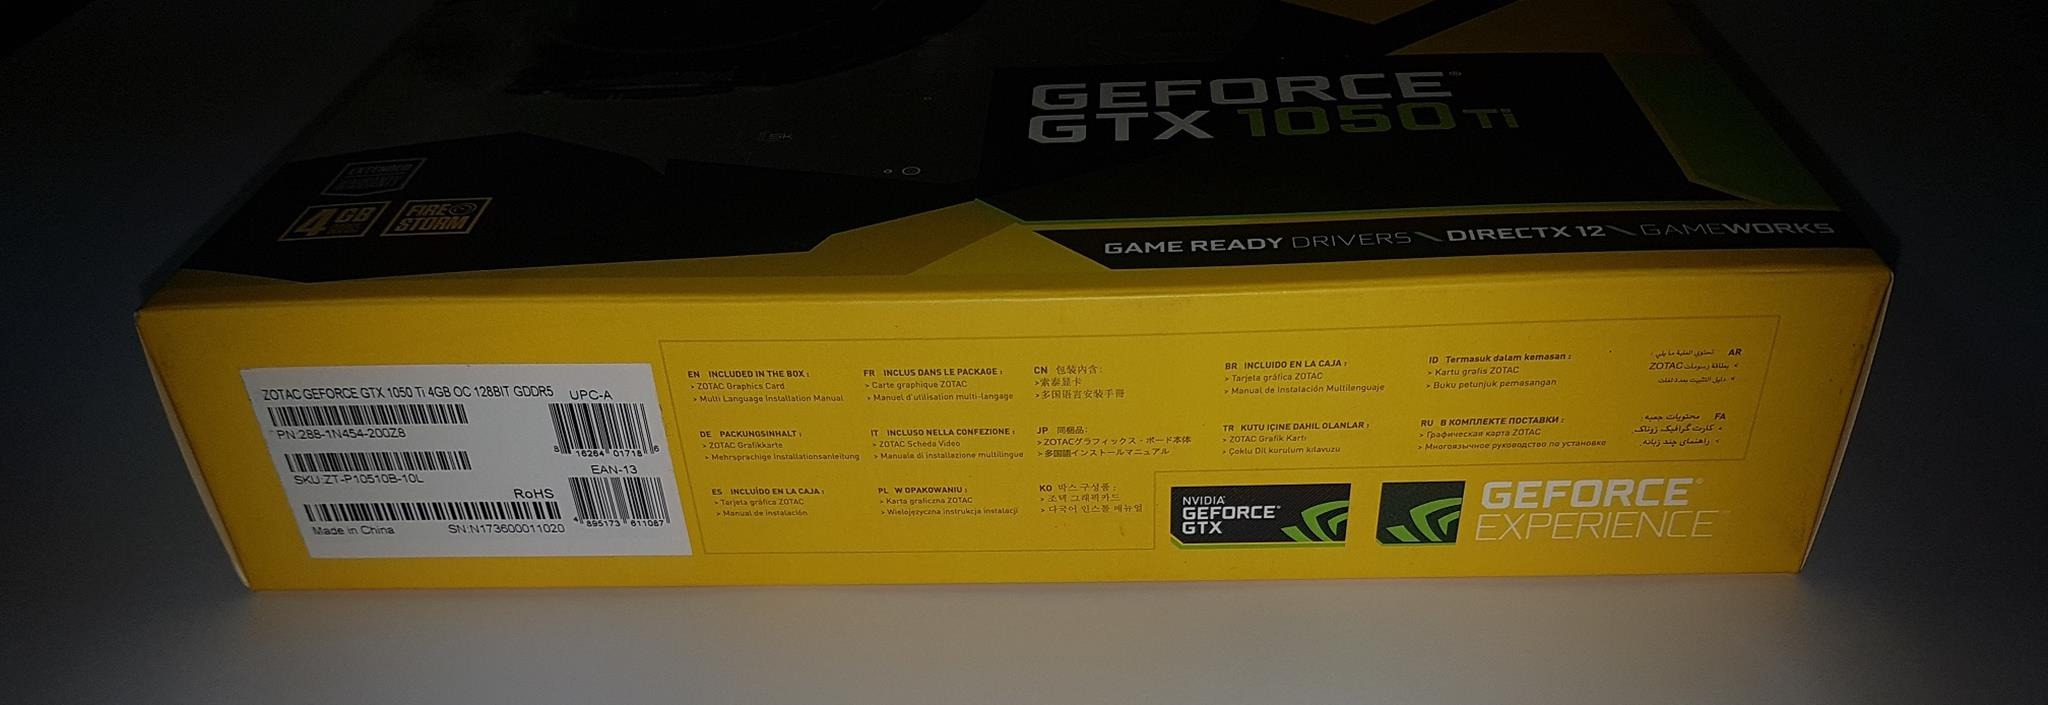 ZOTAC GeForce GTX 1050Ti OC Edition Graphics Card Review